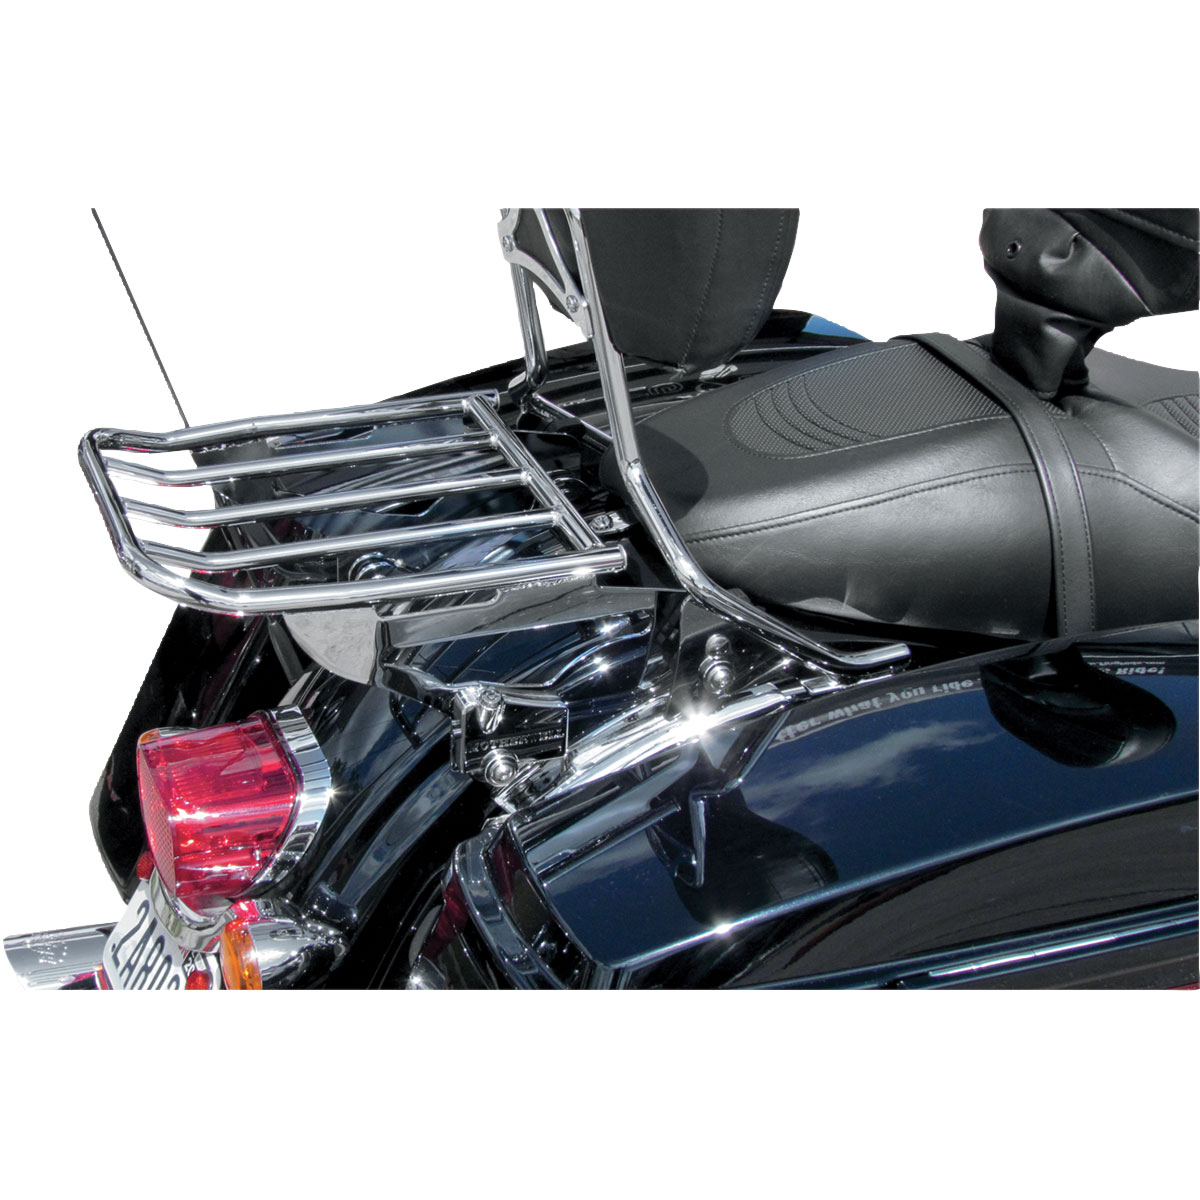 Motherwell 2-Up Detachable Chrome Locking Luggage Rack